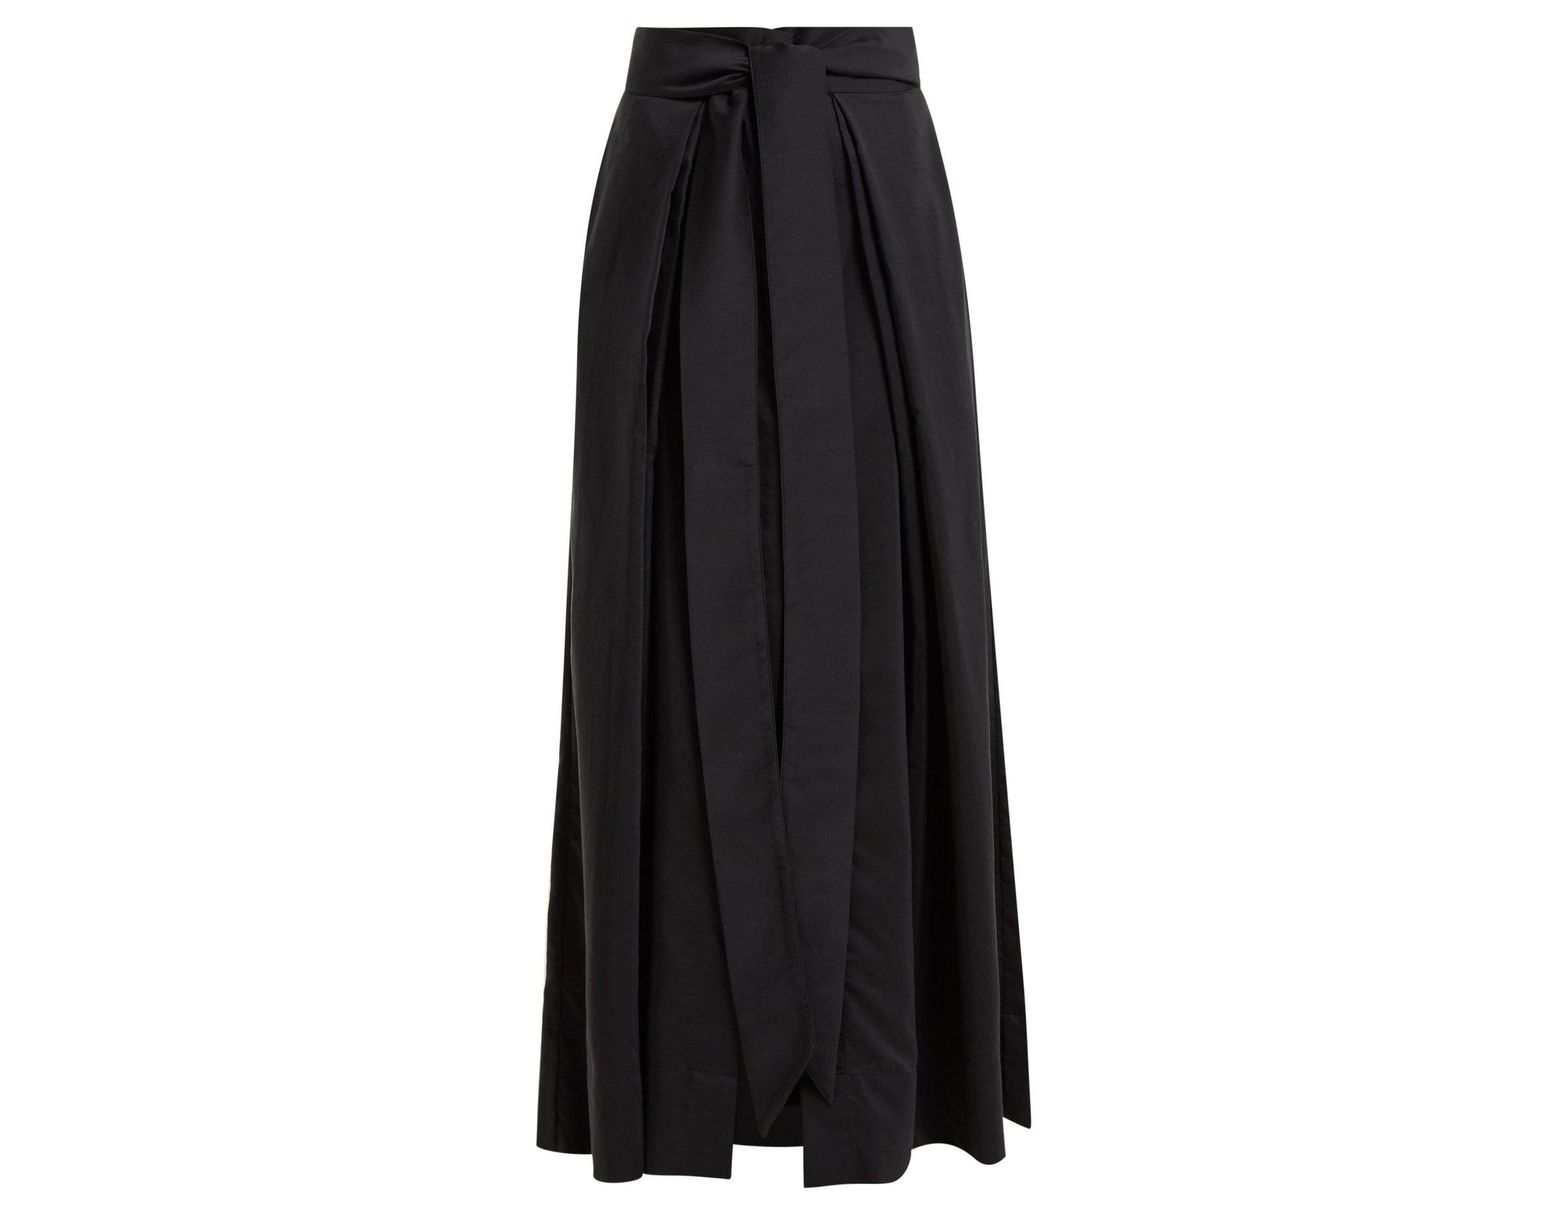 320a1770b Kalita Avendon Cotton And Silk Blend Maxi Skirt in Black - Lyst